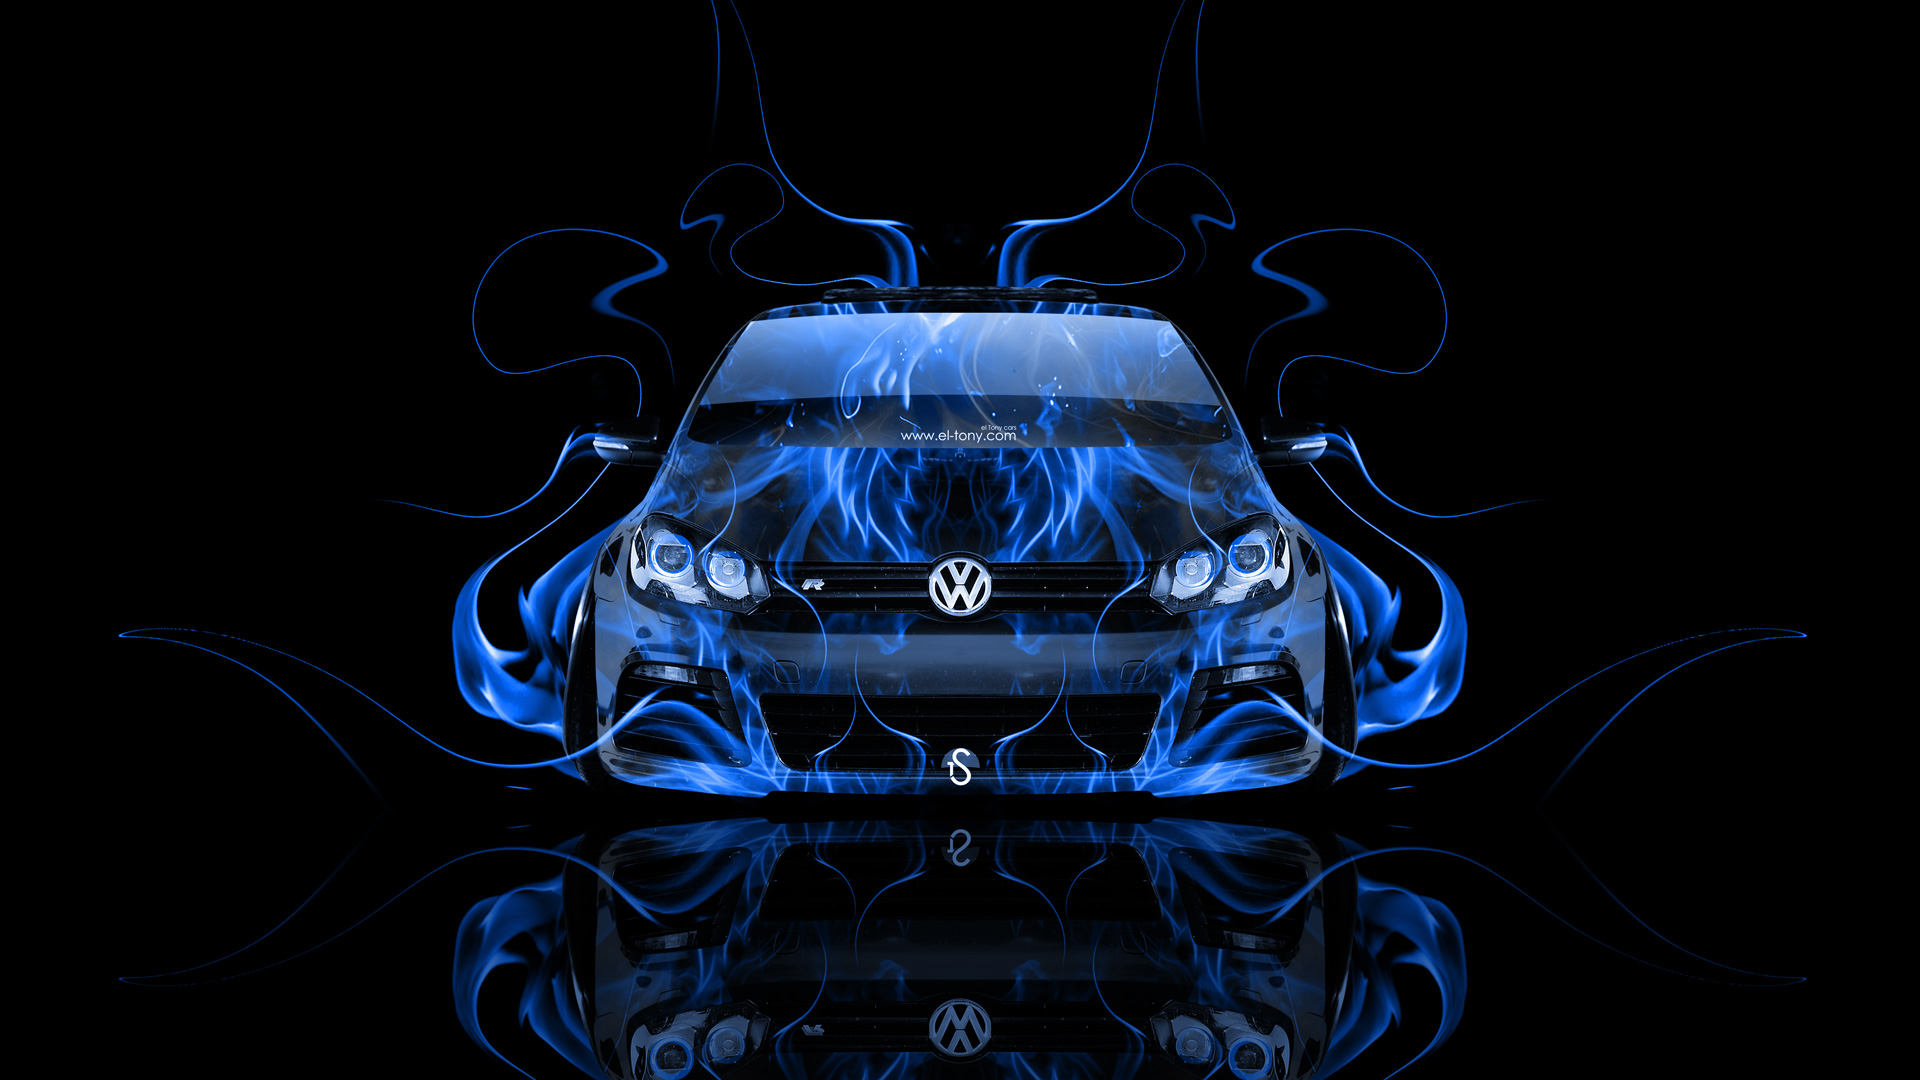 Volkswagen Golf R Front Blue Fire Abstract Car 2014 HD Wallpapers 1920x1080